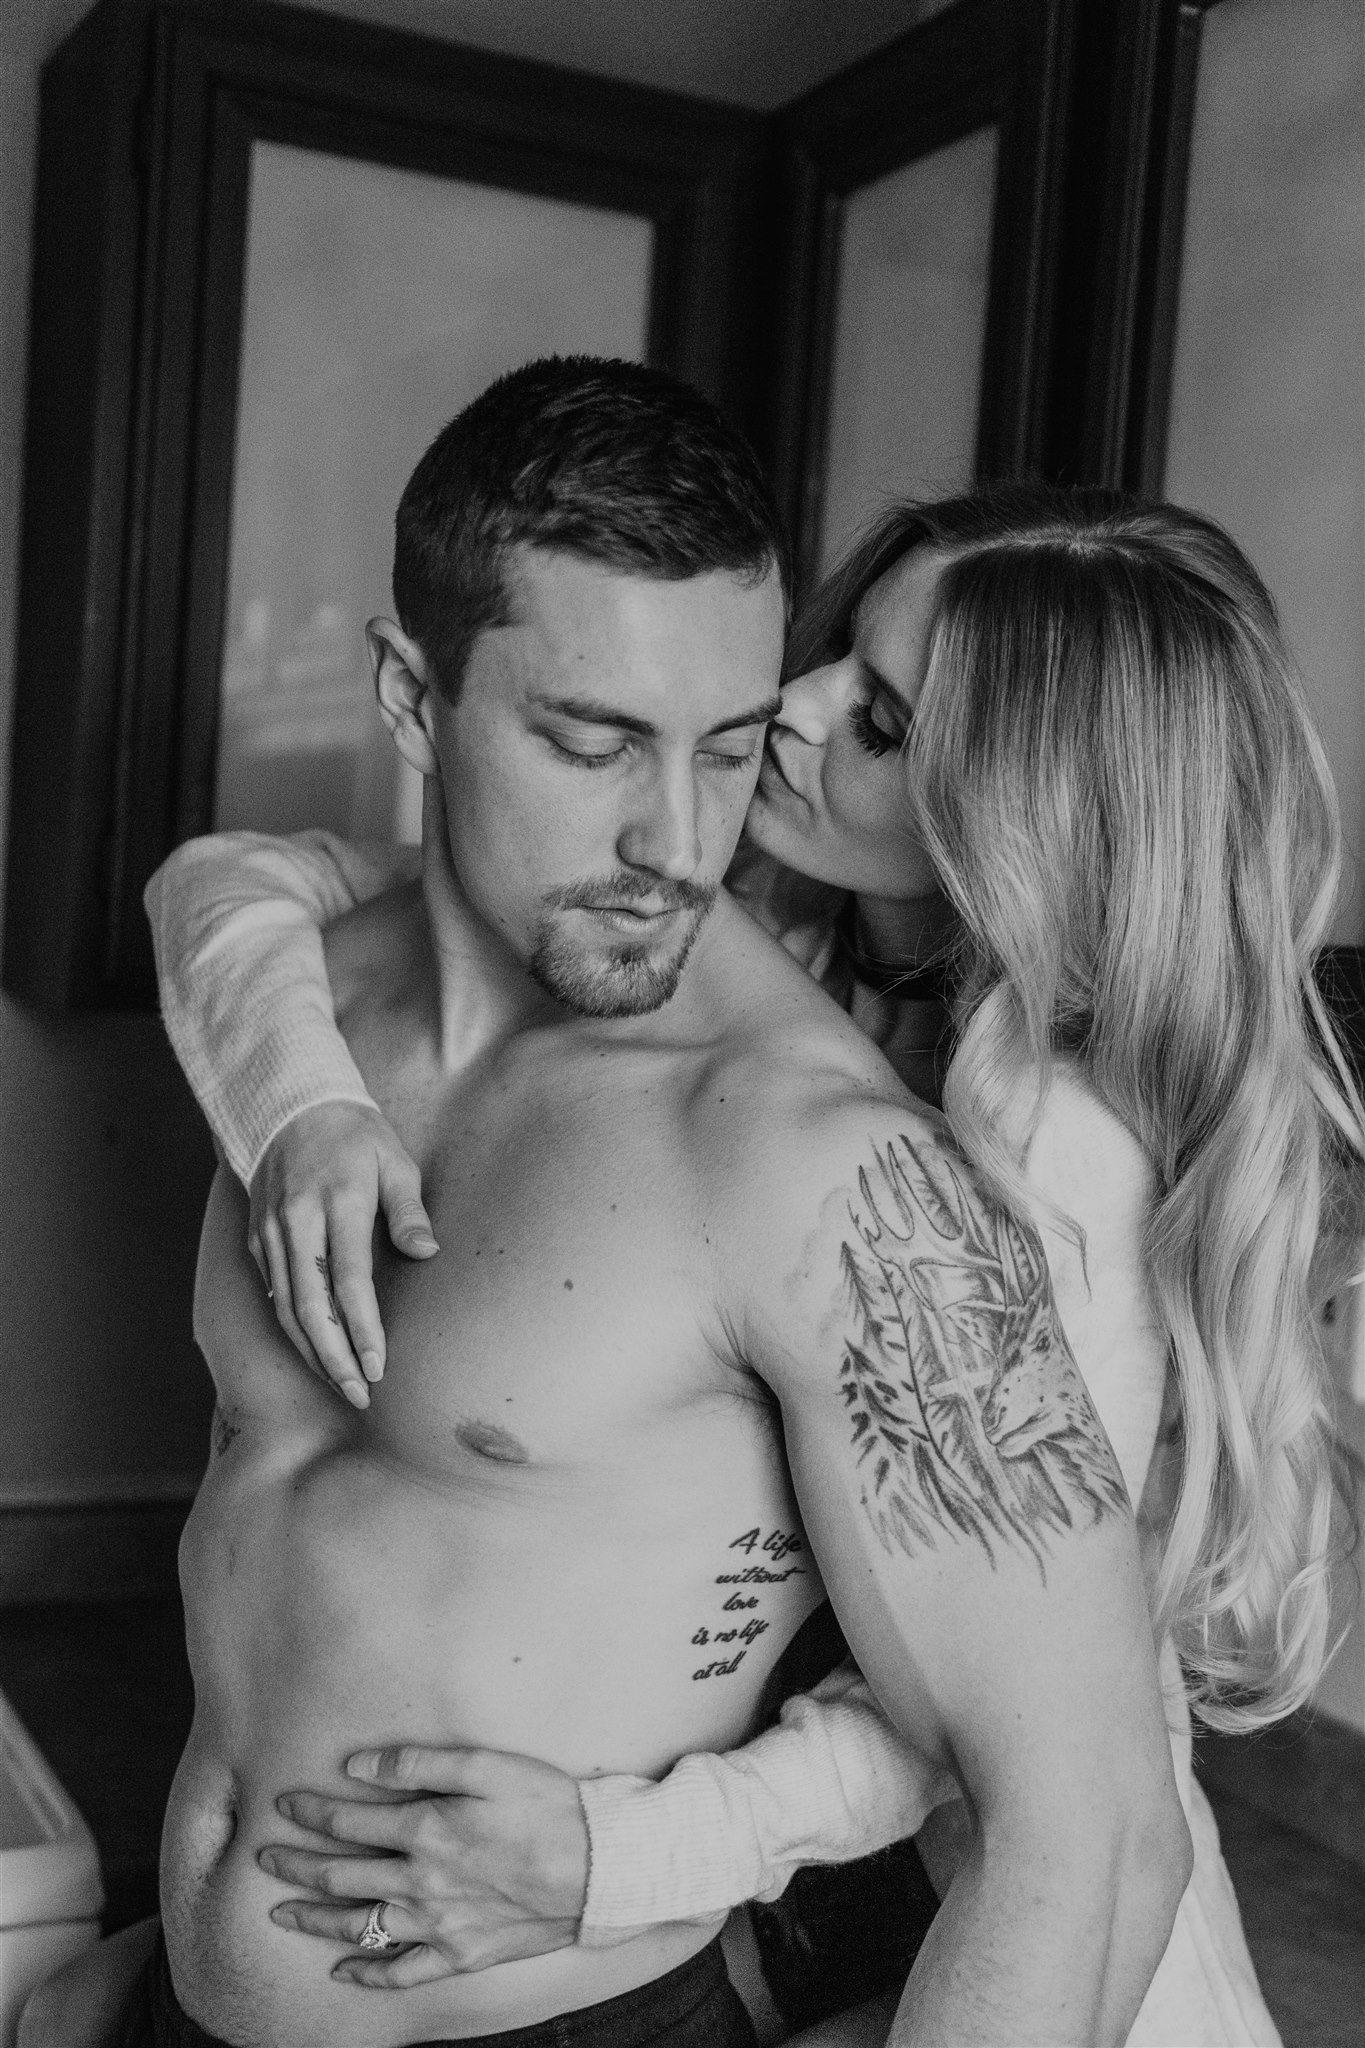 netflix and chill_couples boudoir_abigail miles photography125.jpg